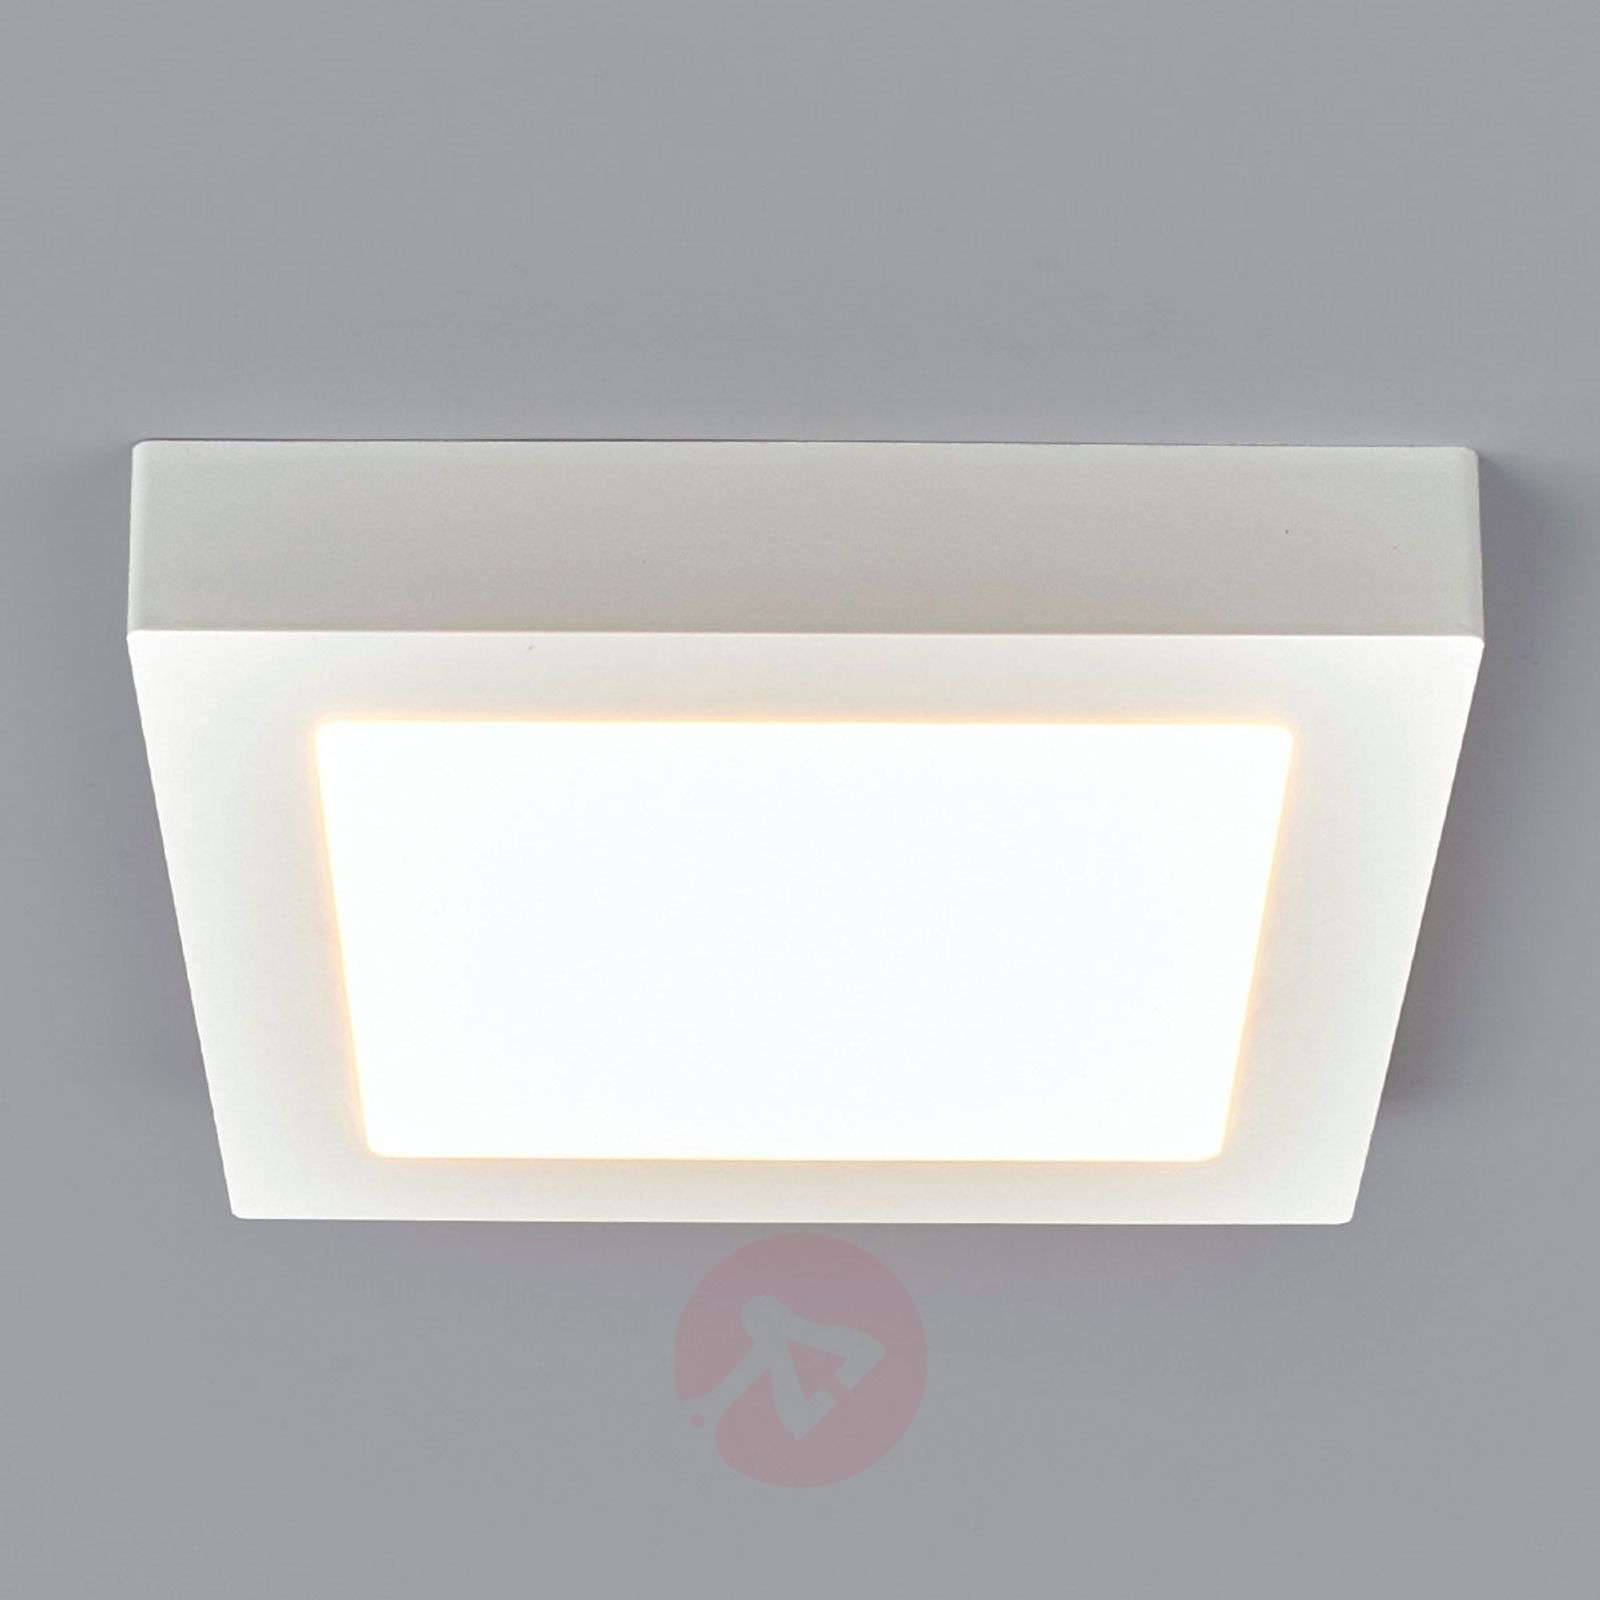 White, square LED bathroom ceiling light Rayan-9978024-011